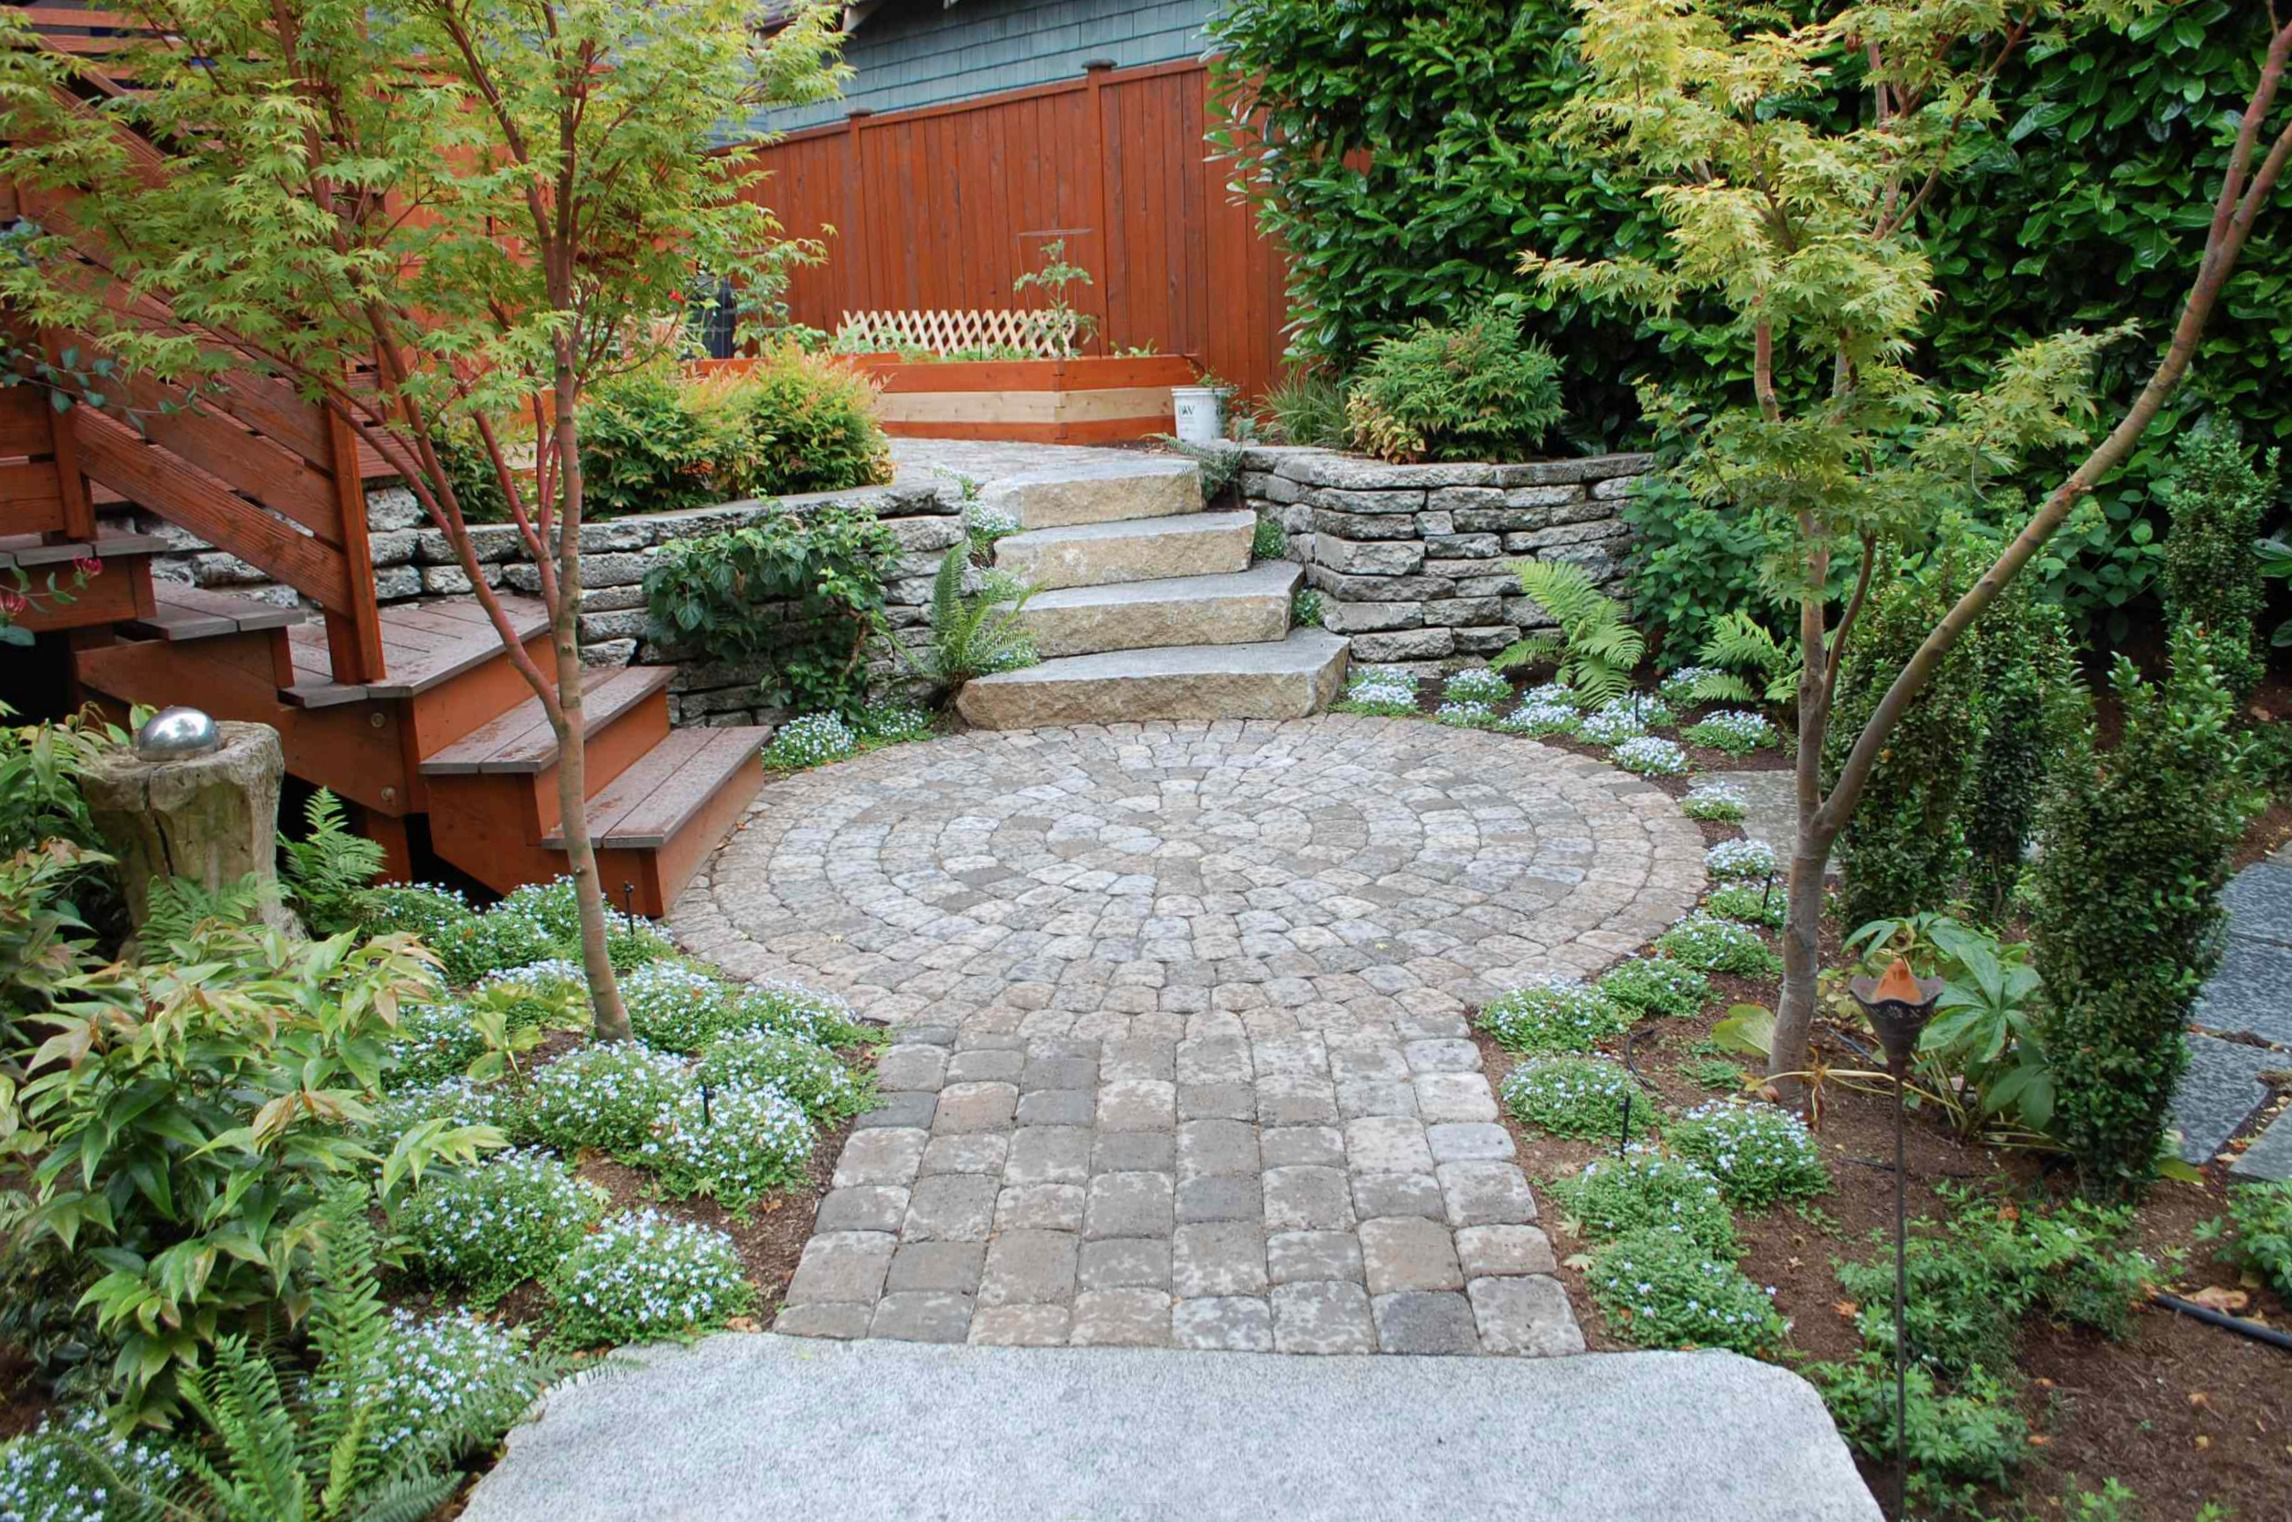 25 Perfect Patio Paver Design Ideas on Small Backyard Brick Patio Ideas id=85852